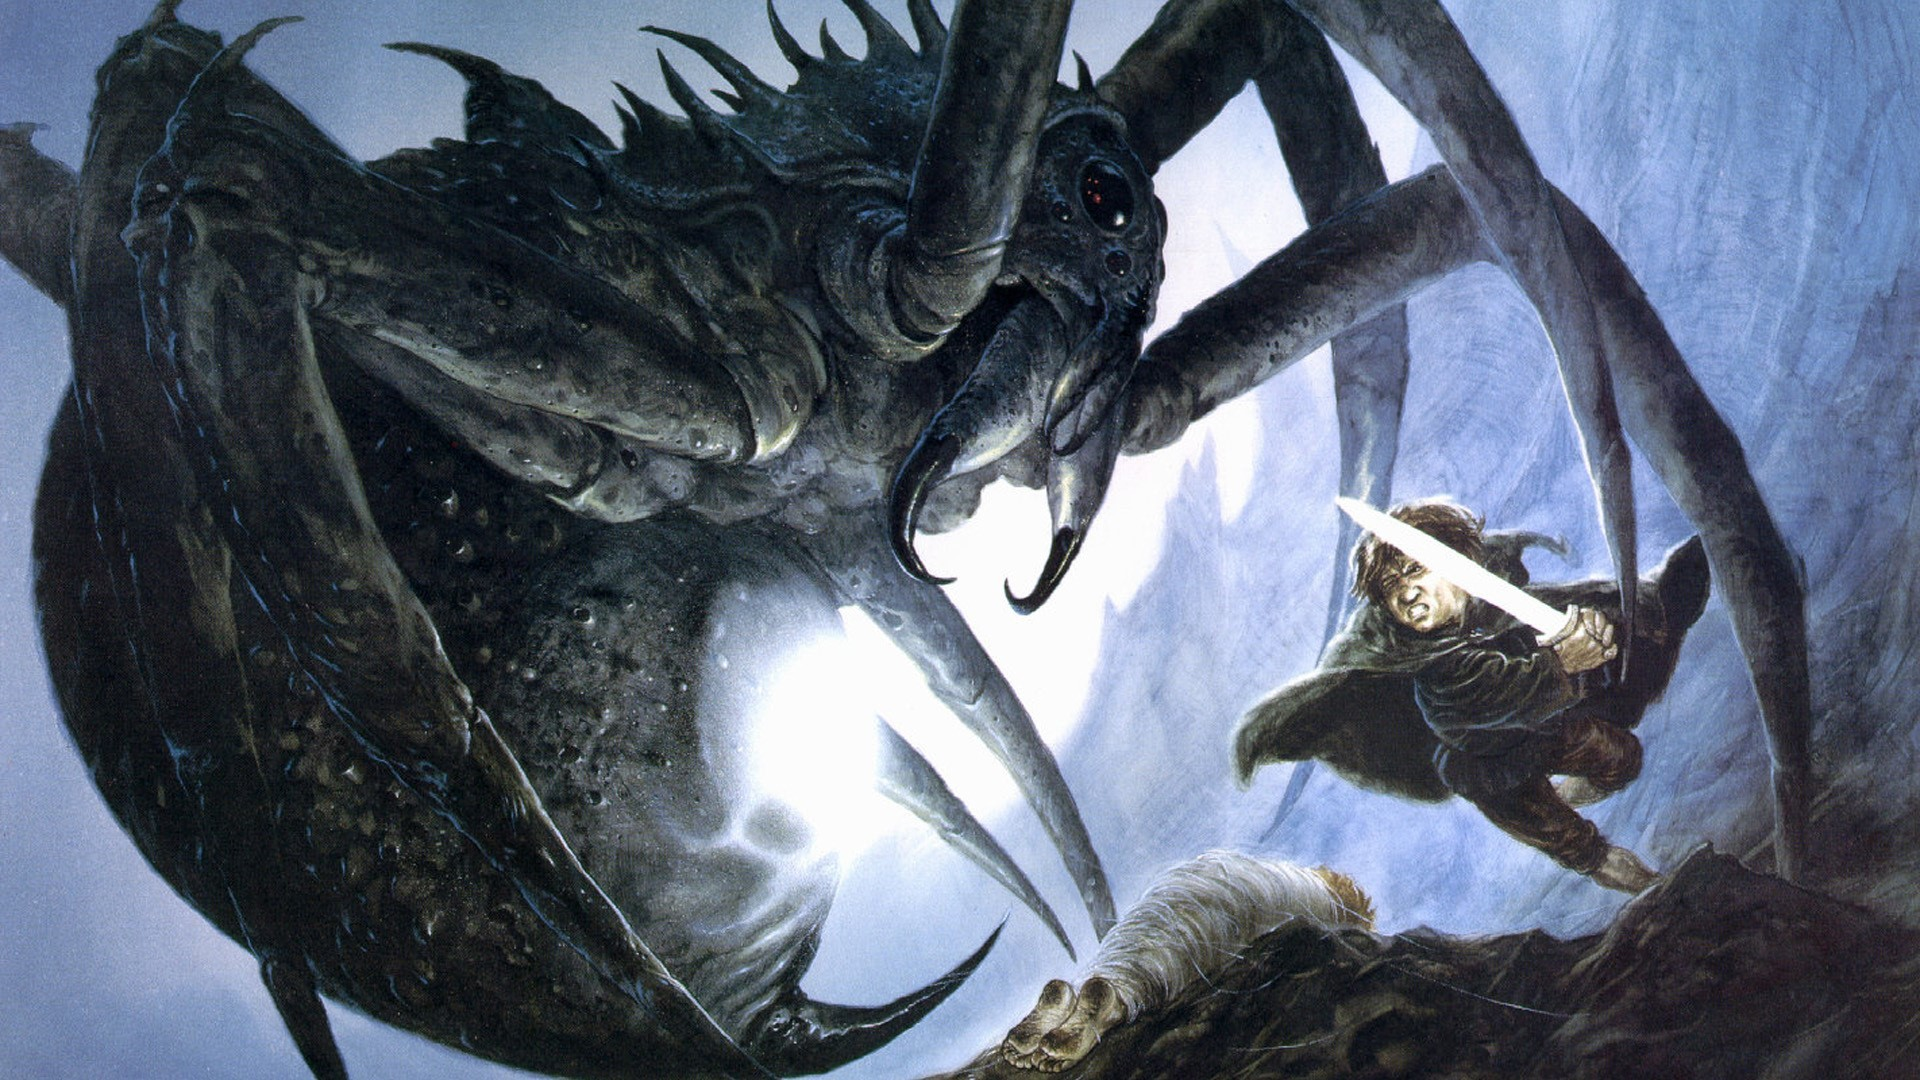 Res: 1920x1080, j r r_ tolkien the lord of the rings shelob samwise gamgee wallpaper and  background